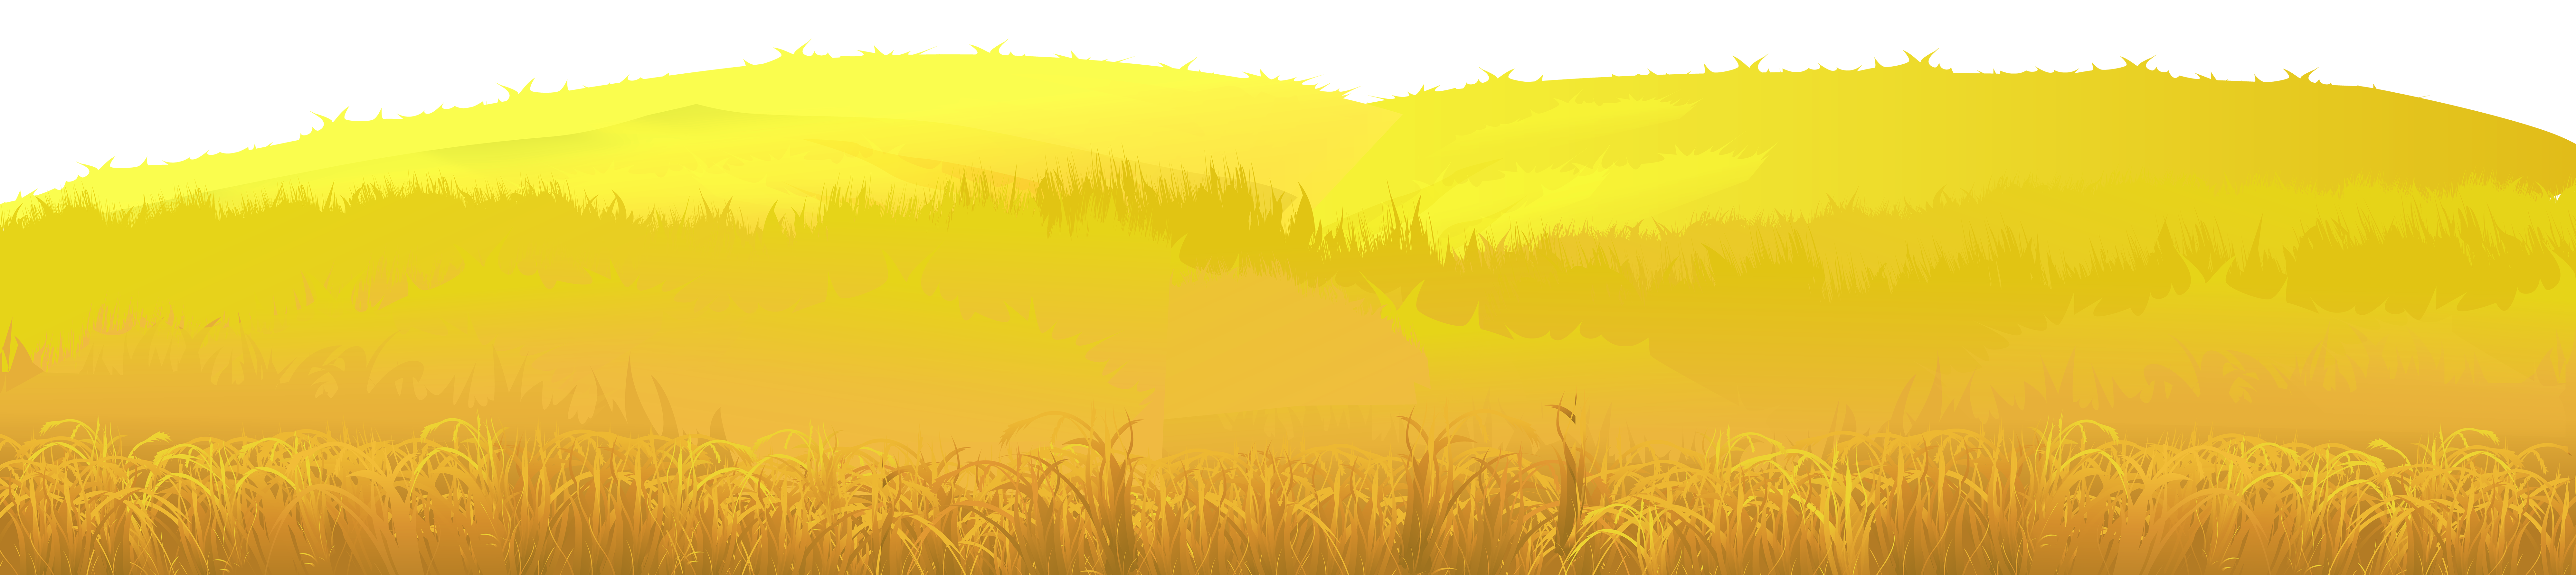 Field clipart. Autumn ground png clip